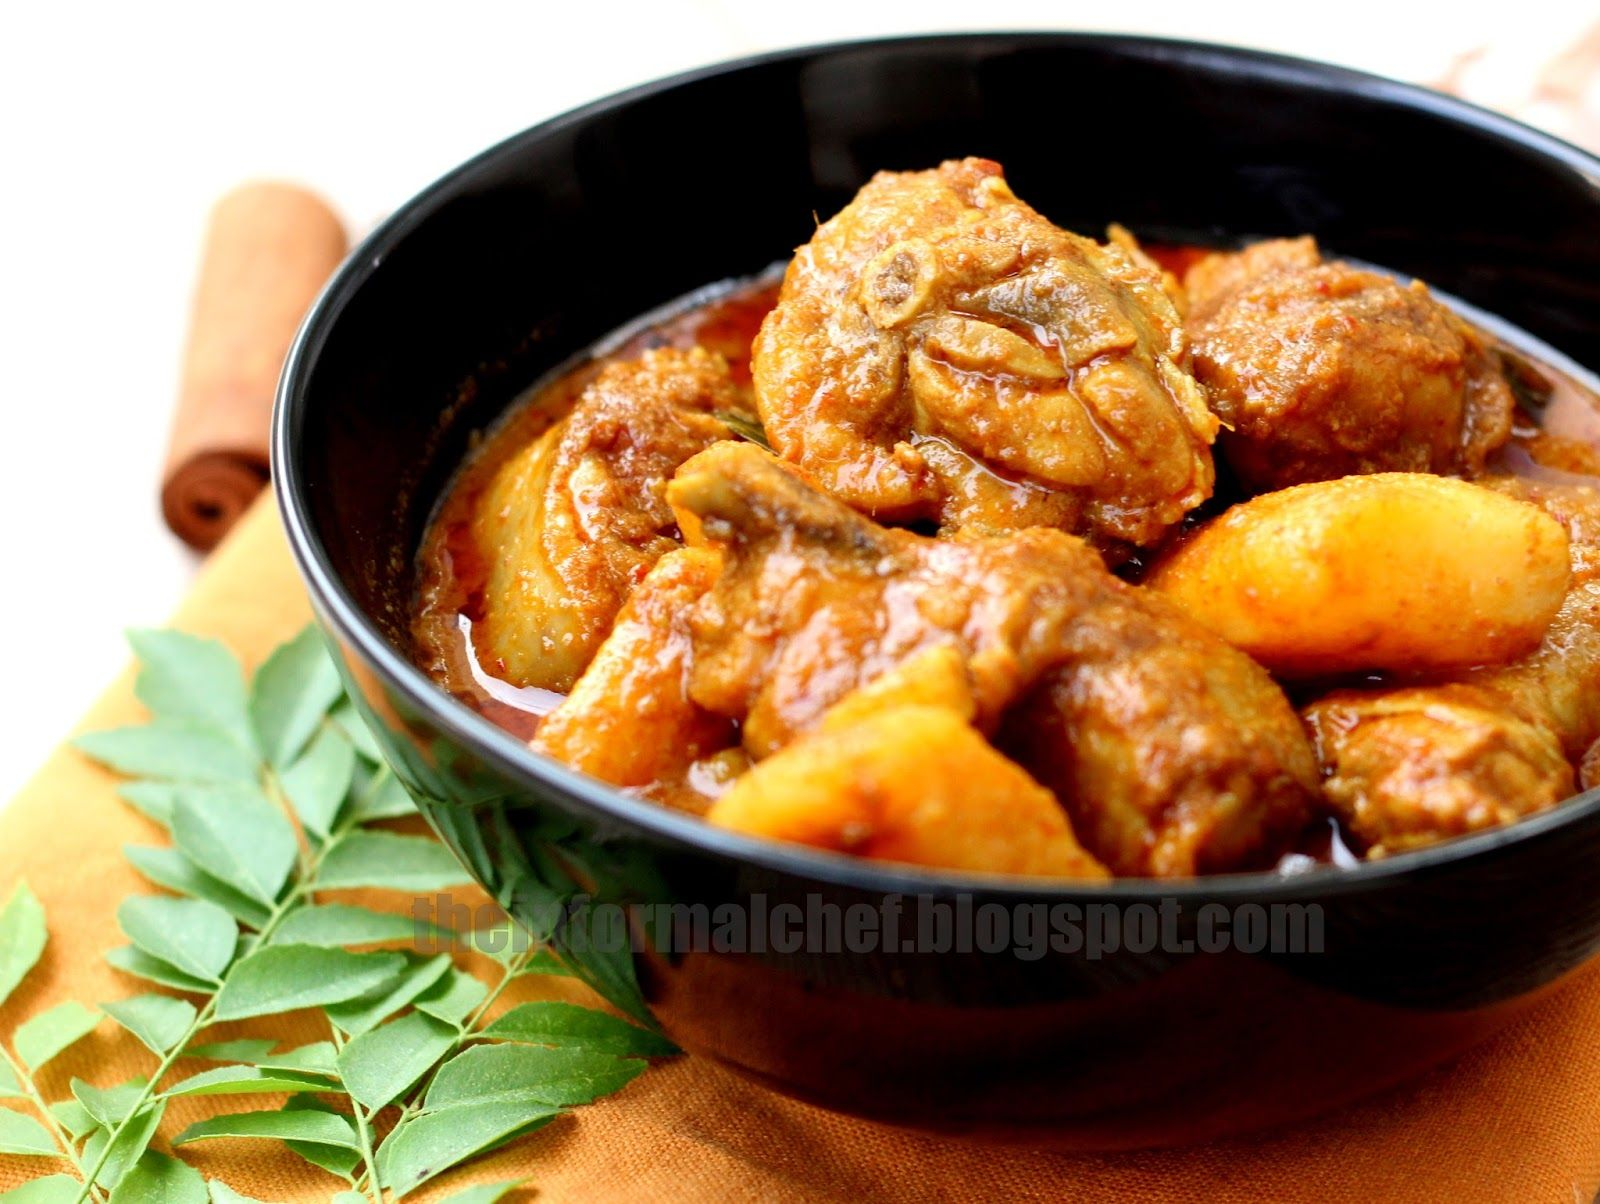 This curry consists of at least 10 different types of ingredients, and a good hour from preparation to sauteeing the curry paste, just to get that paste into its wonderful aroma. The longer you fry, the more aromatic it would be and the better is the curry.